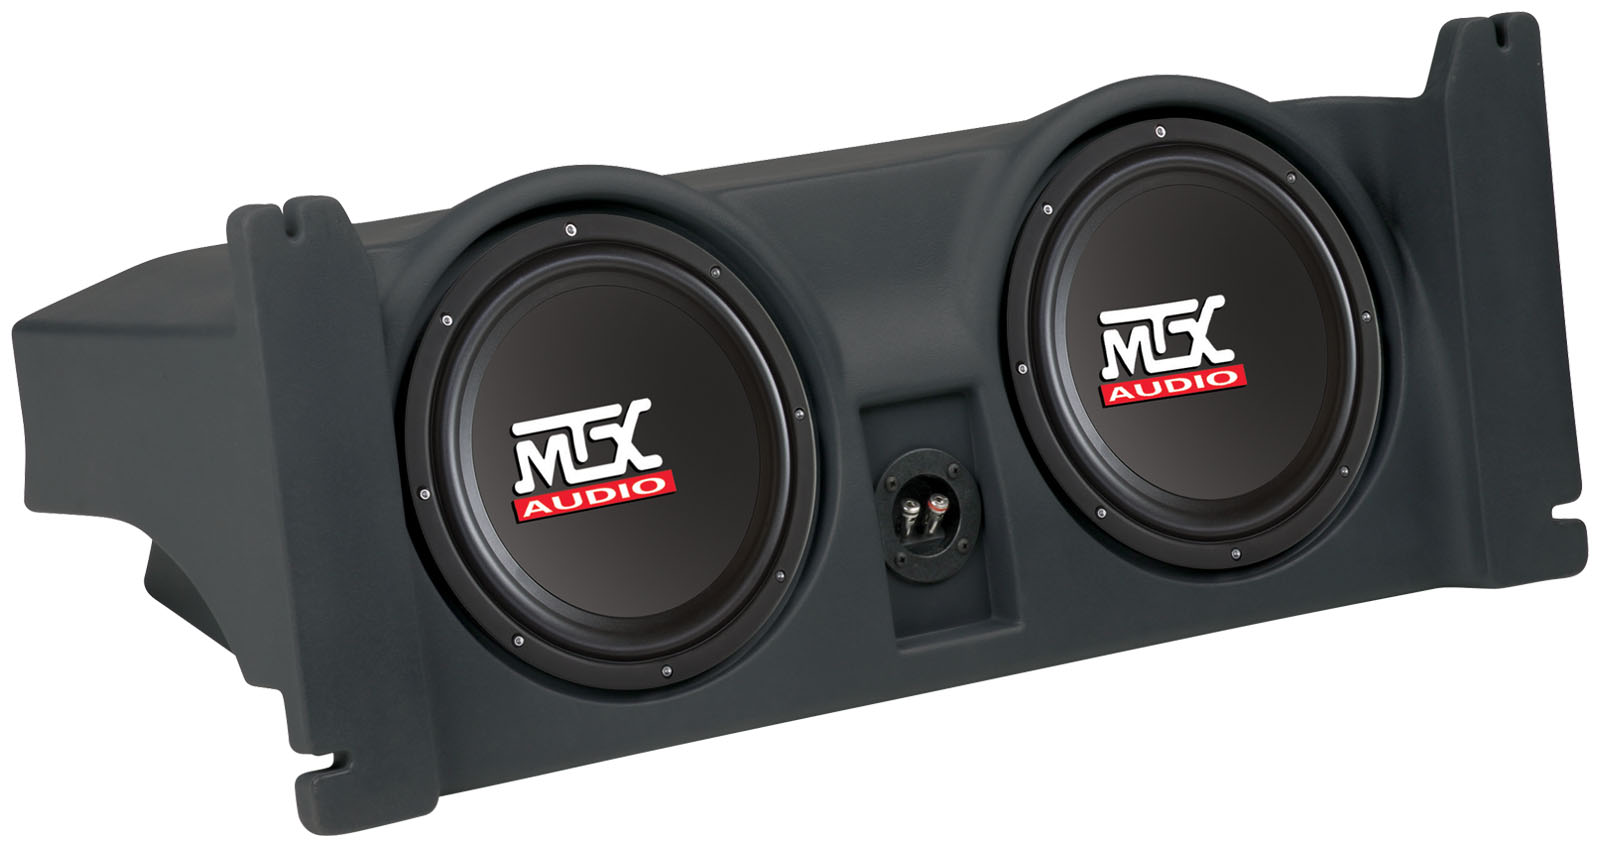 Search Mtx Audio Serious About Sound Wiring Harness For Audiophile Sub Help Jeep Wrangler Tj Amplified Dual 10 Inch 200w Rms Vehicle Specific Custom Subwoofer Enclosure Jwtj97c20a Tn